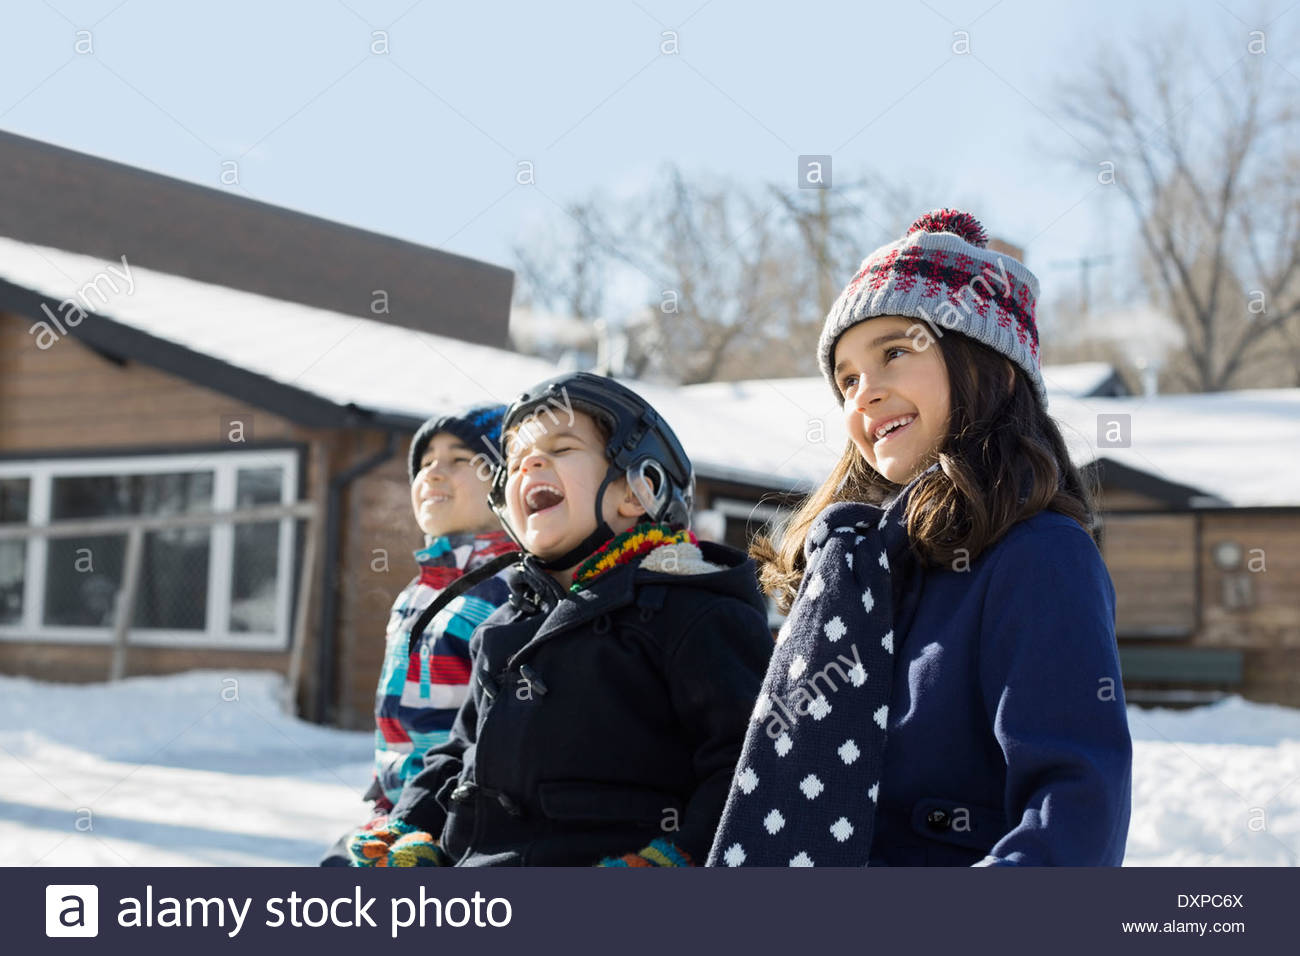 Portrait of siblings sitting on bench outdoors - Stock Image